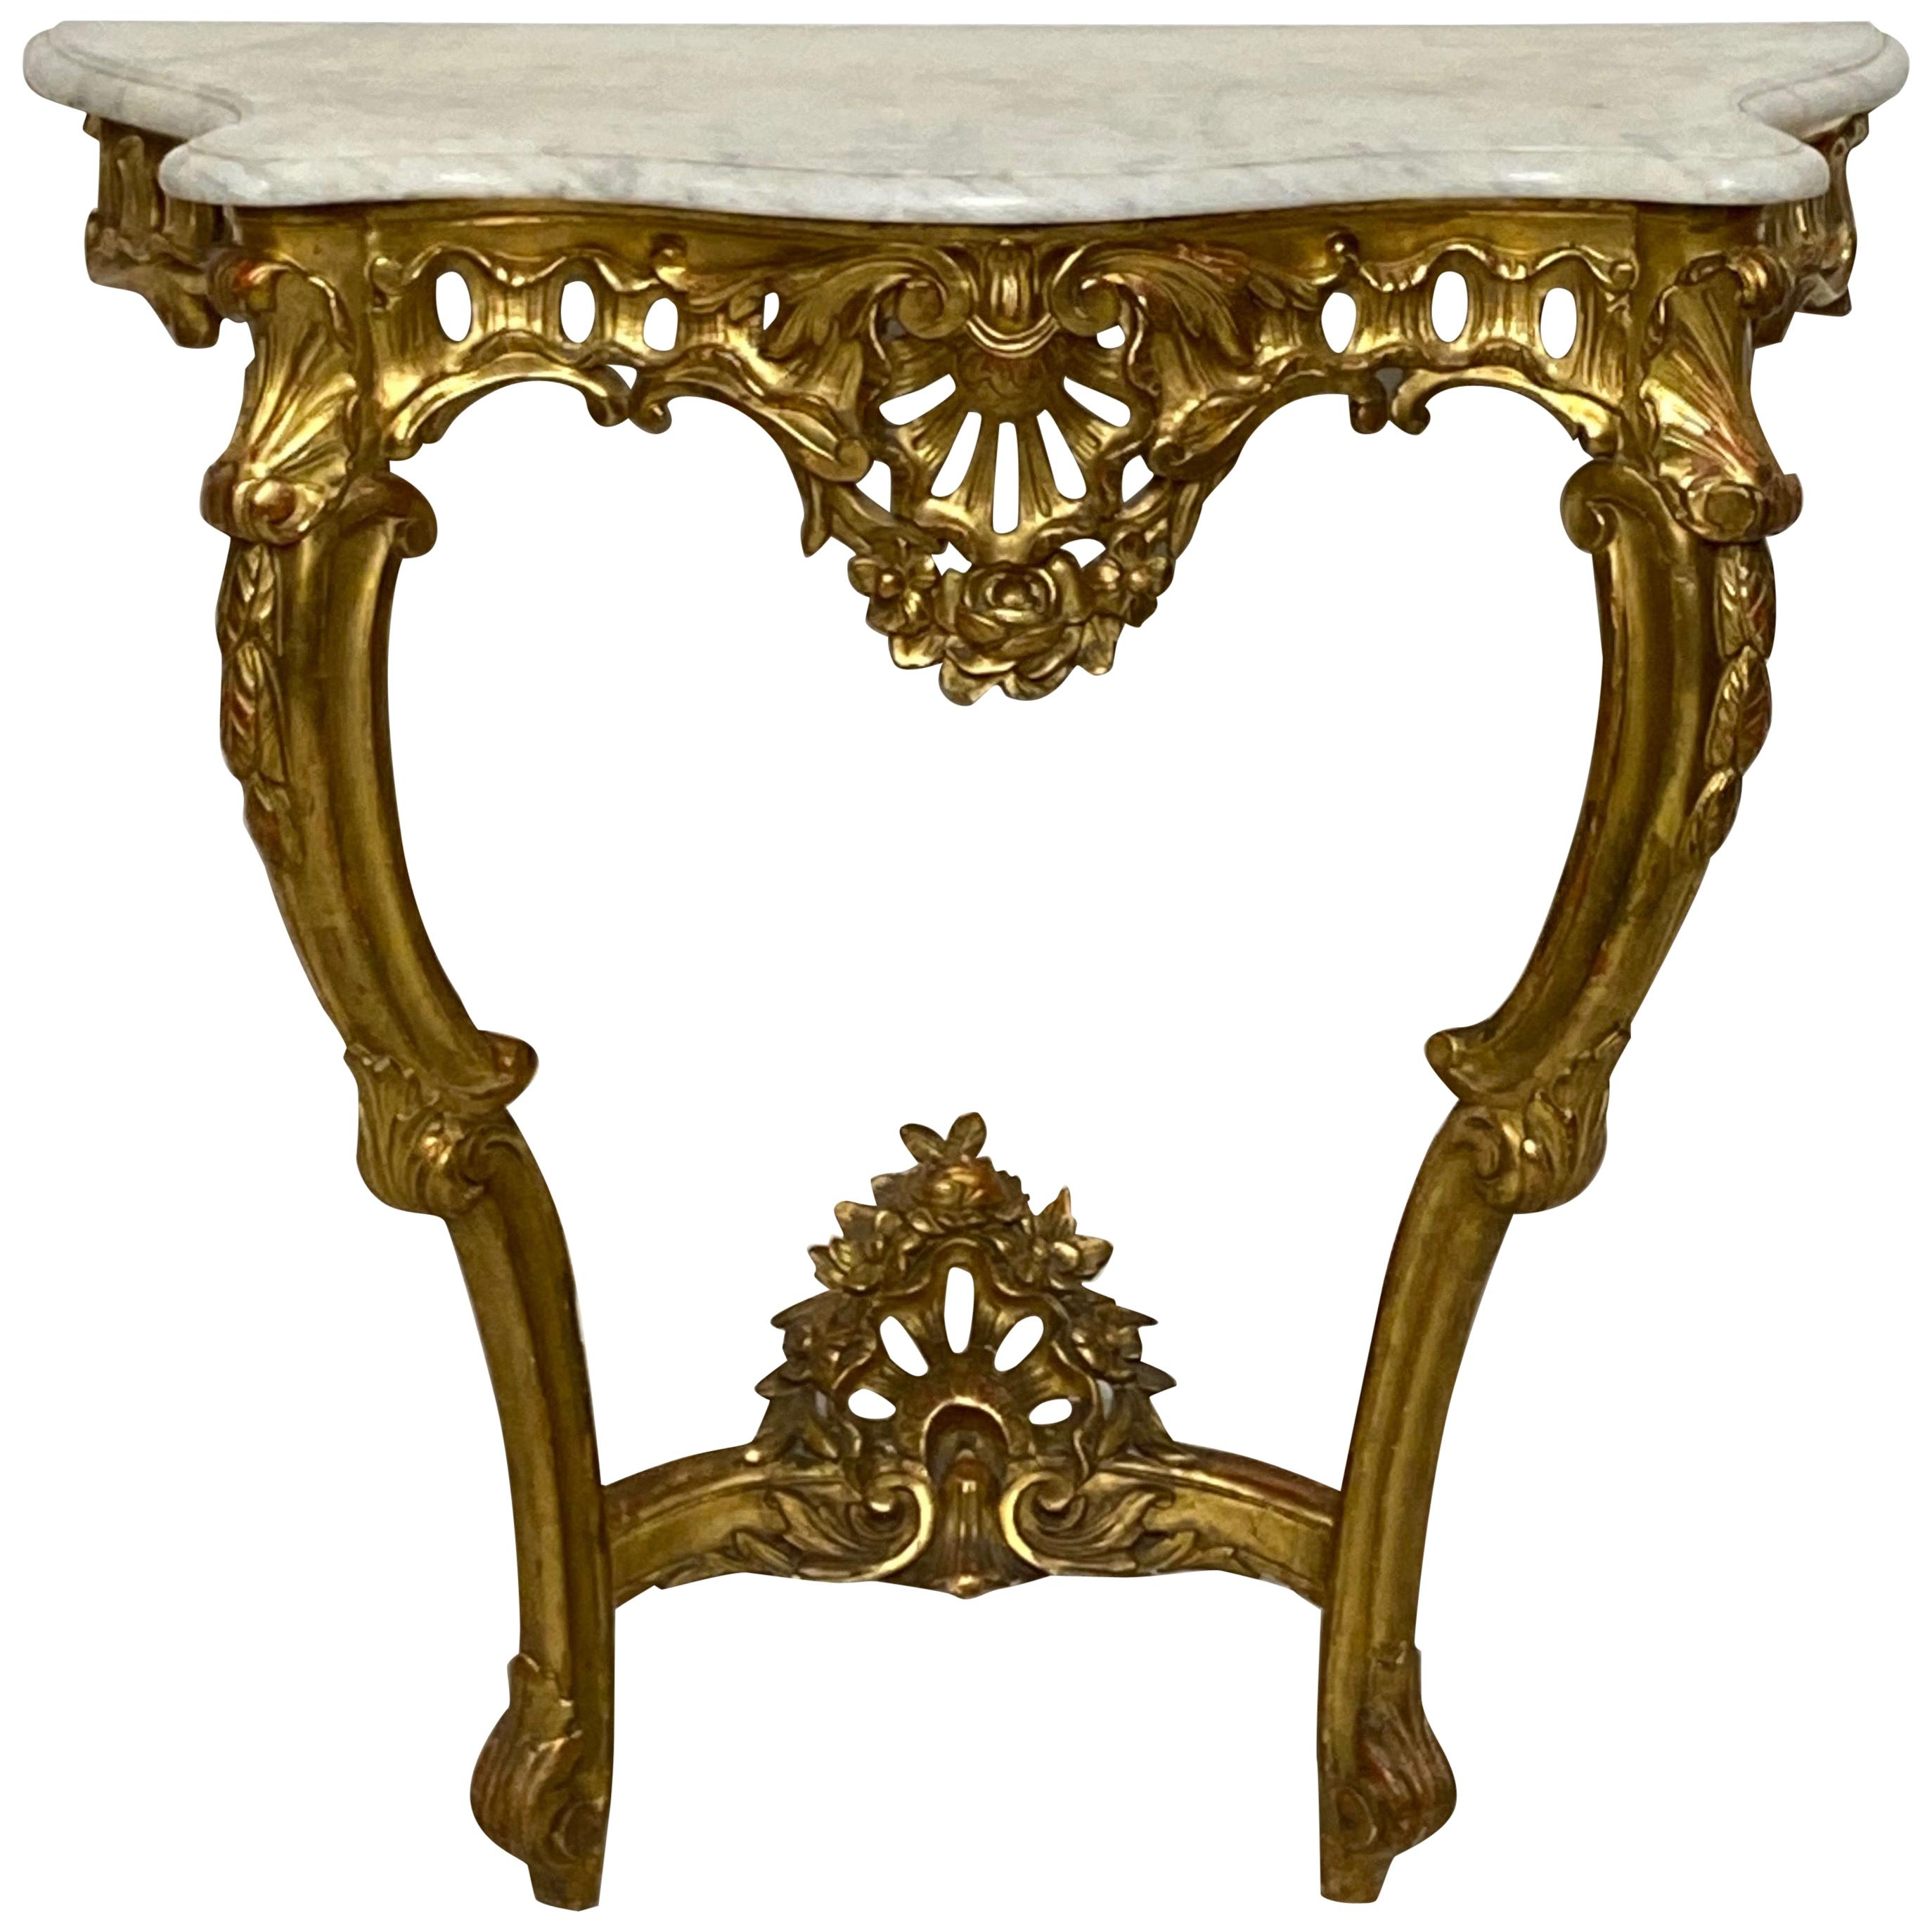 Carved and Giltwood Console Table with Marble Top, Italian, 19th Century